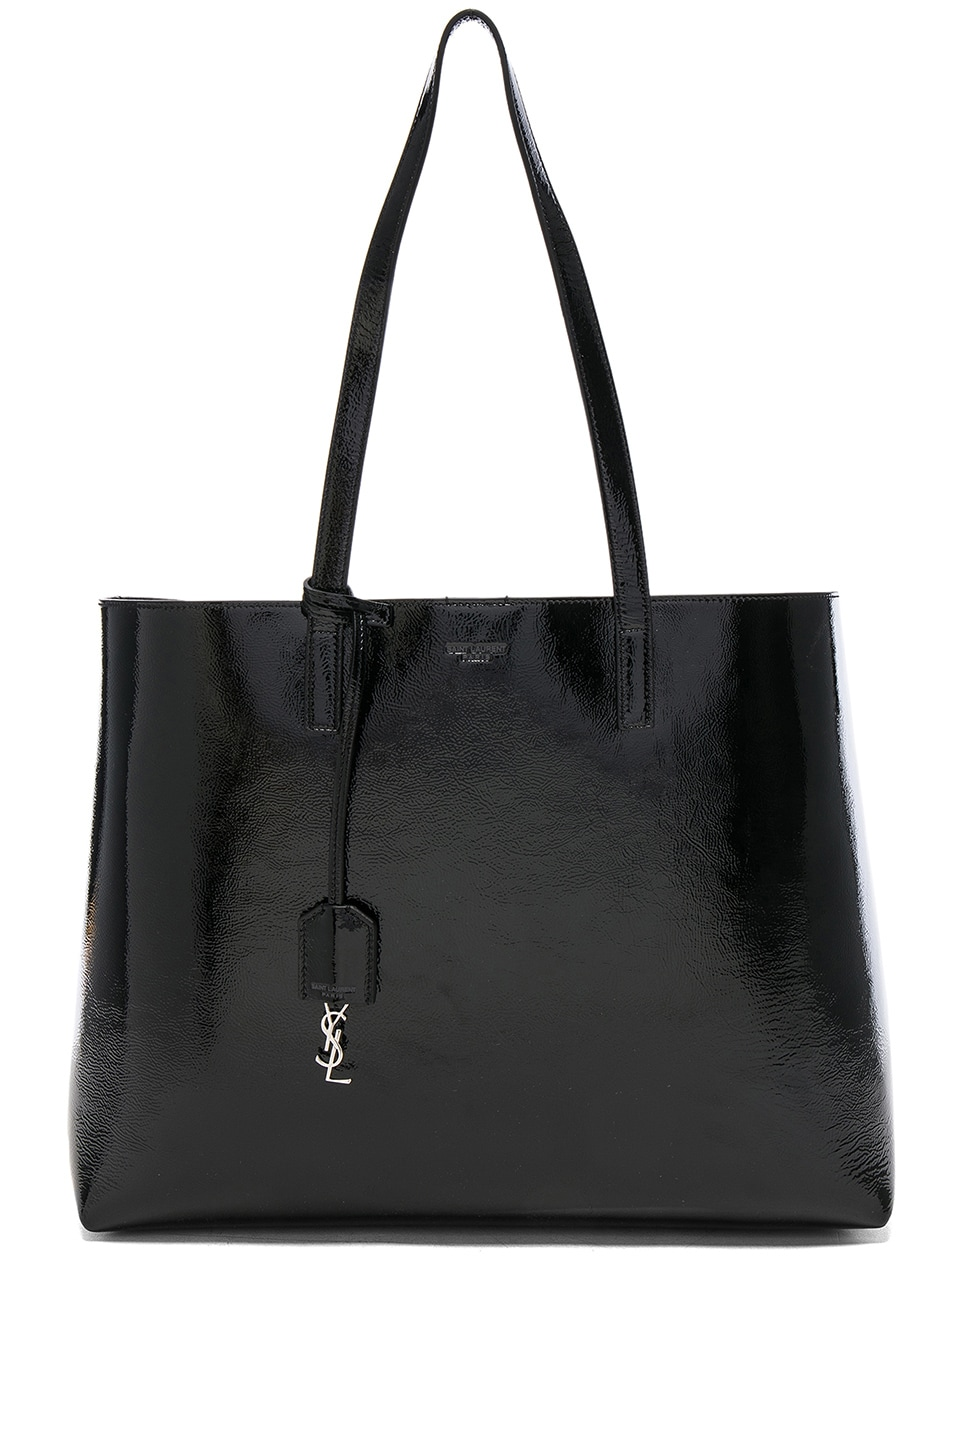 Image 1 of Saint Laurent Patent Leather East West Shopping Bag in Black